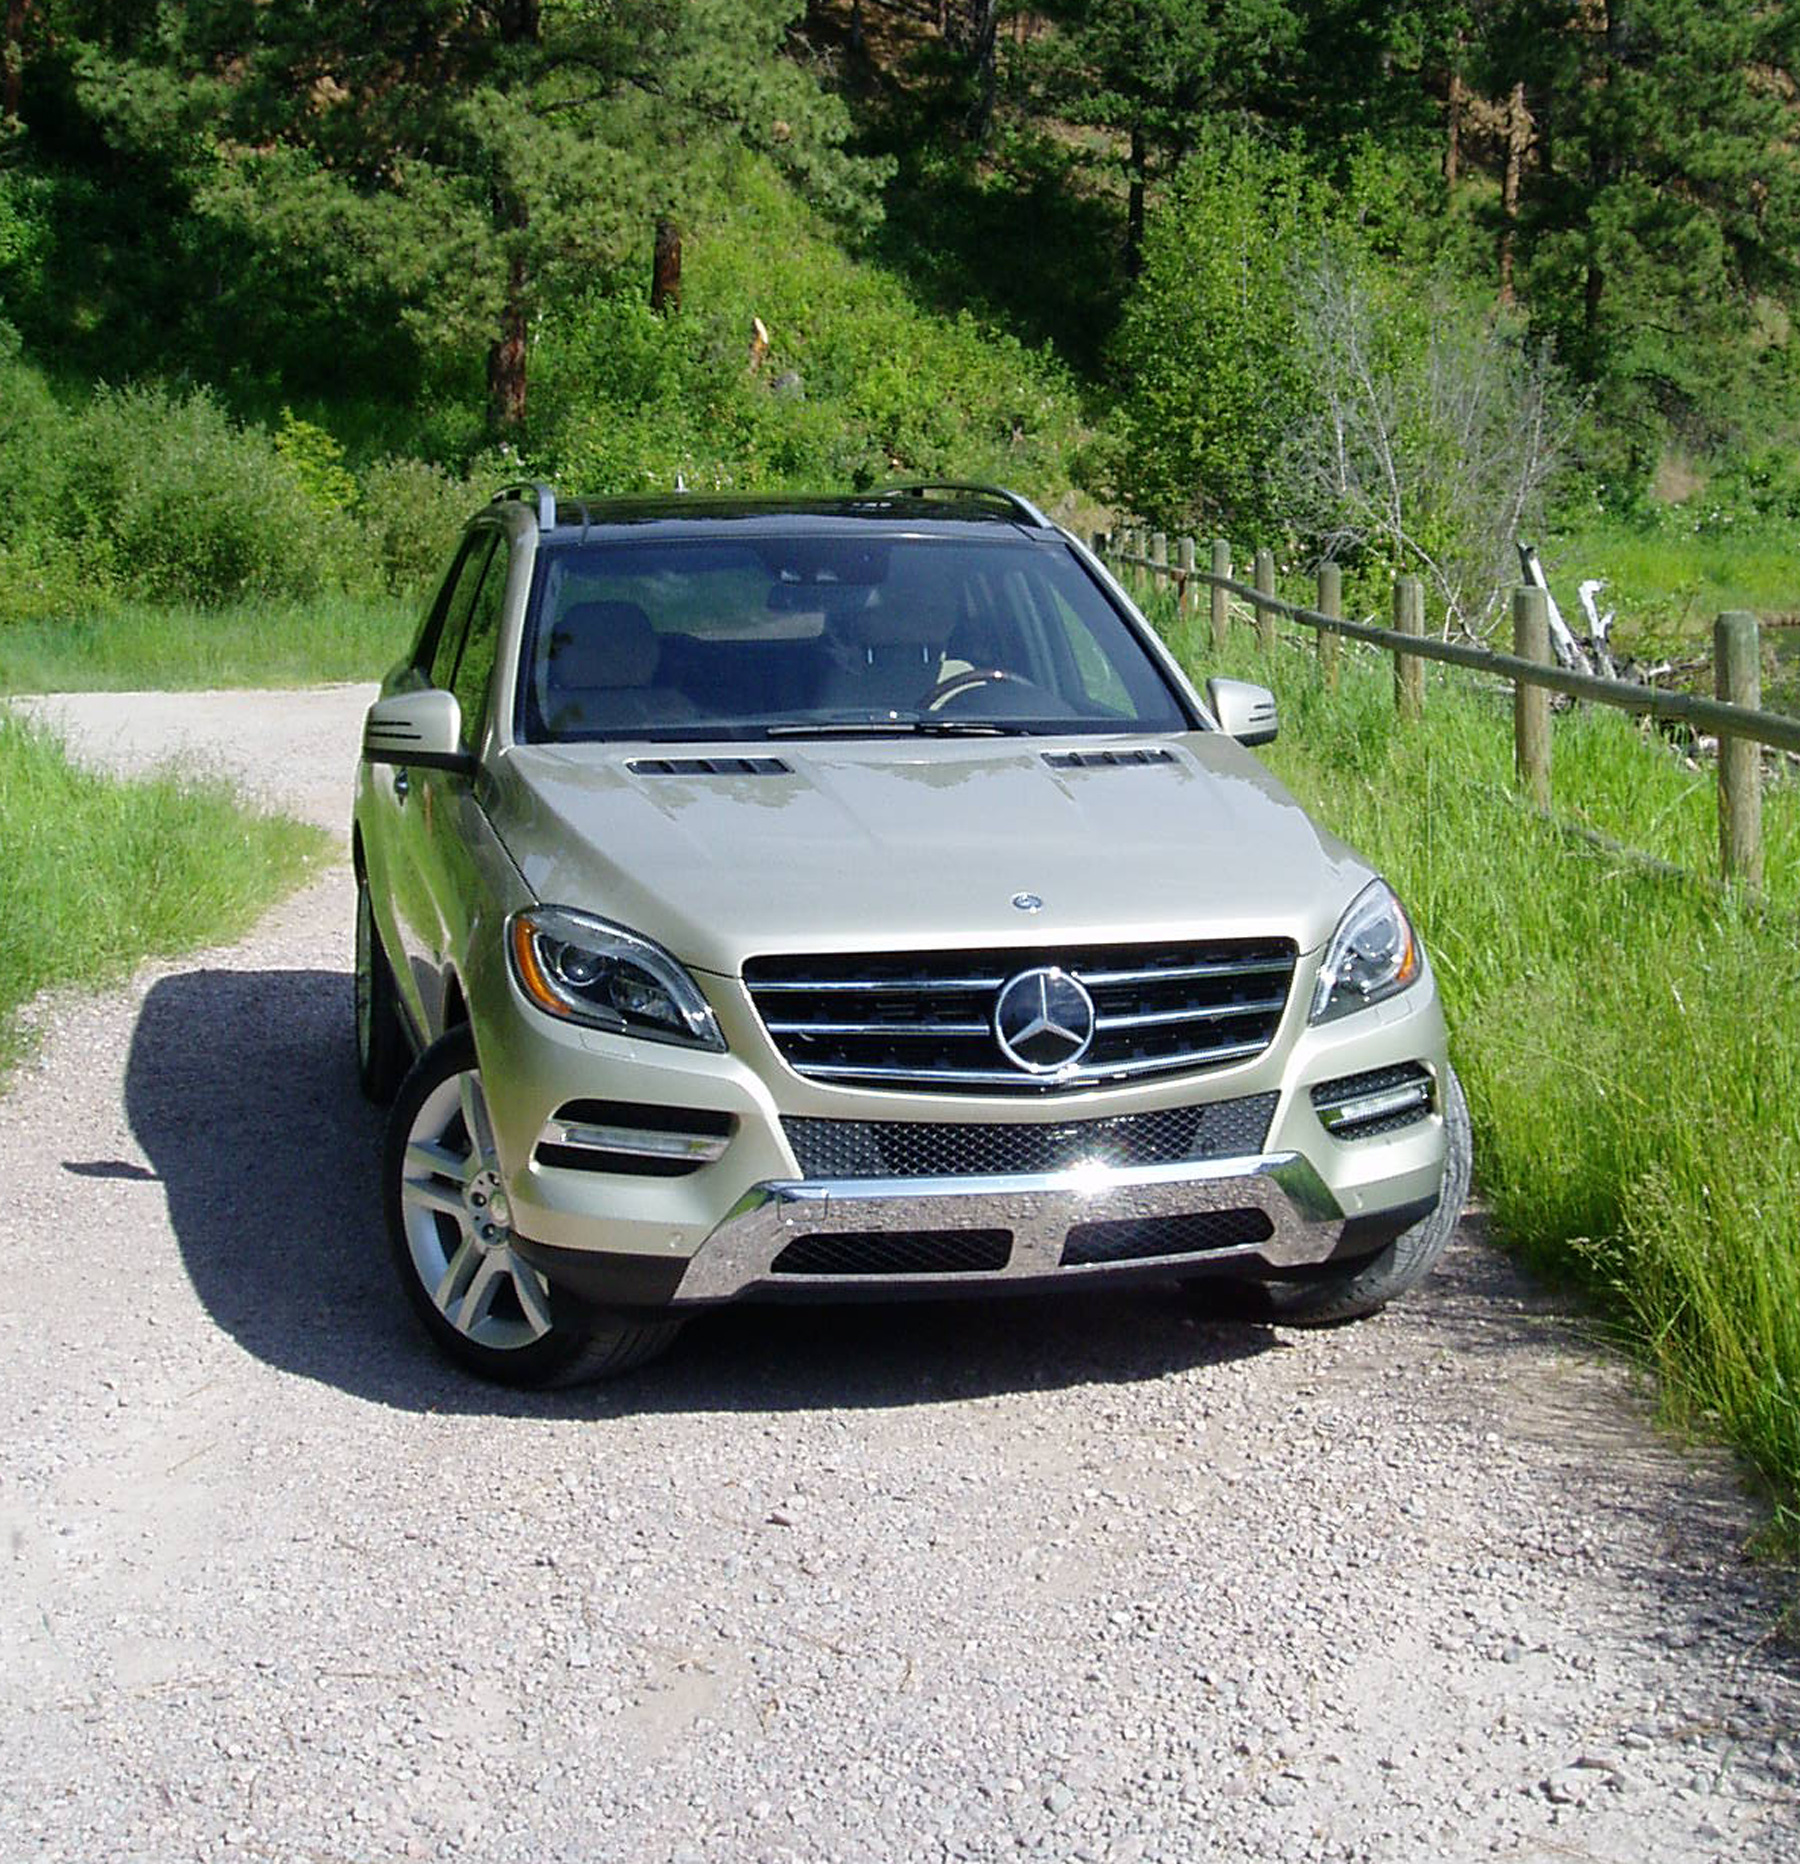 2012 mercedes benz ml350 suv our auto expert for Mercedes benz suv ml350